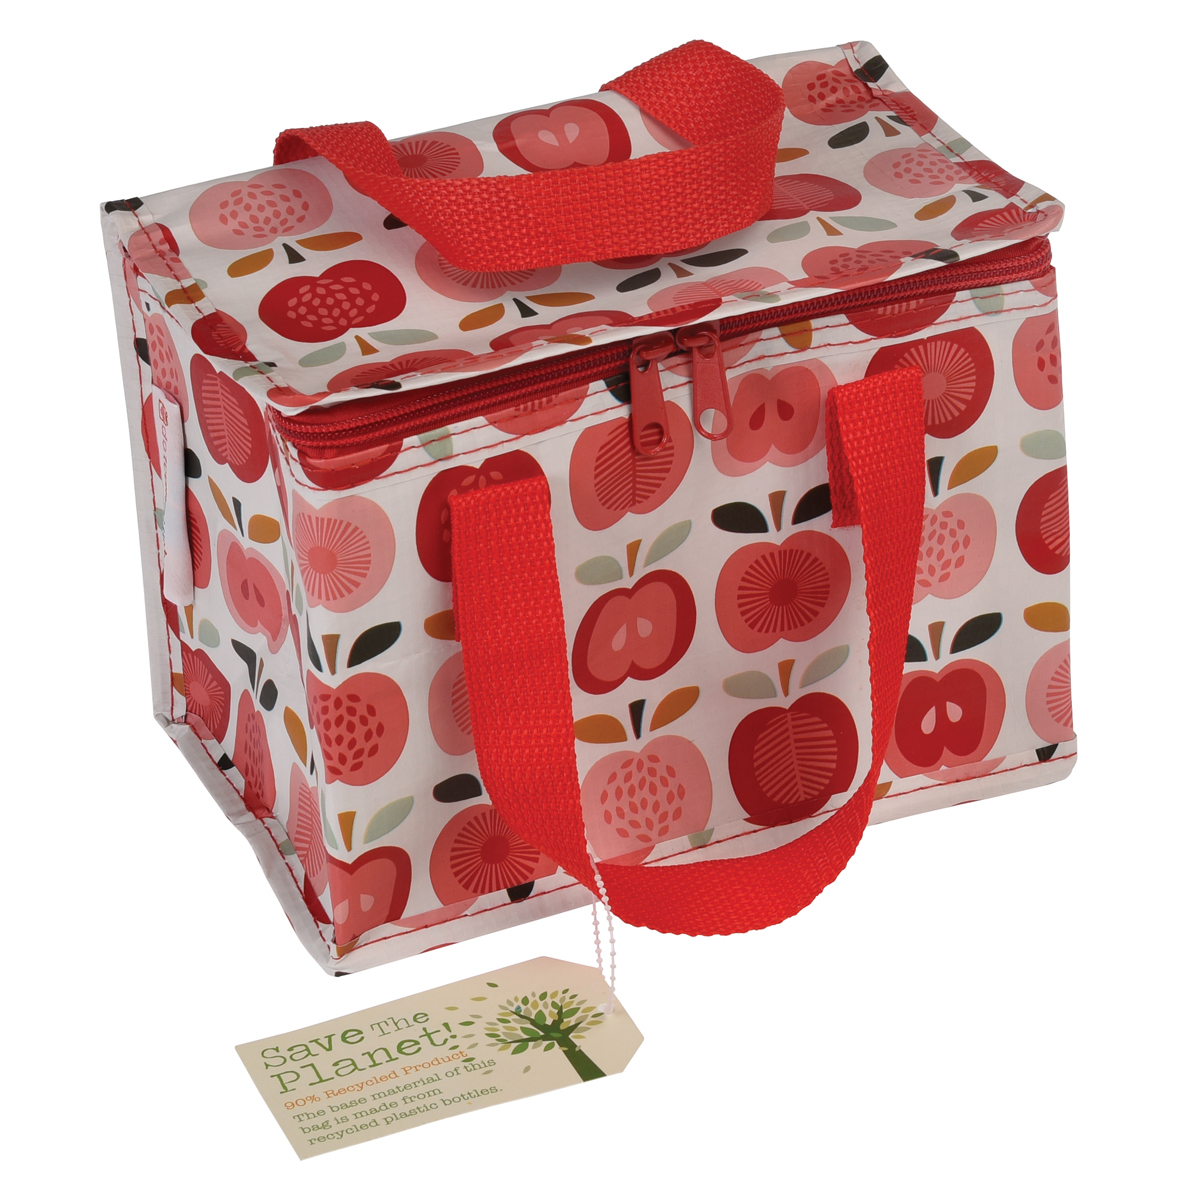 Sac isotherme Lunch Bag - Vintage Apples Lunch Bag - Vintage Apples